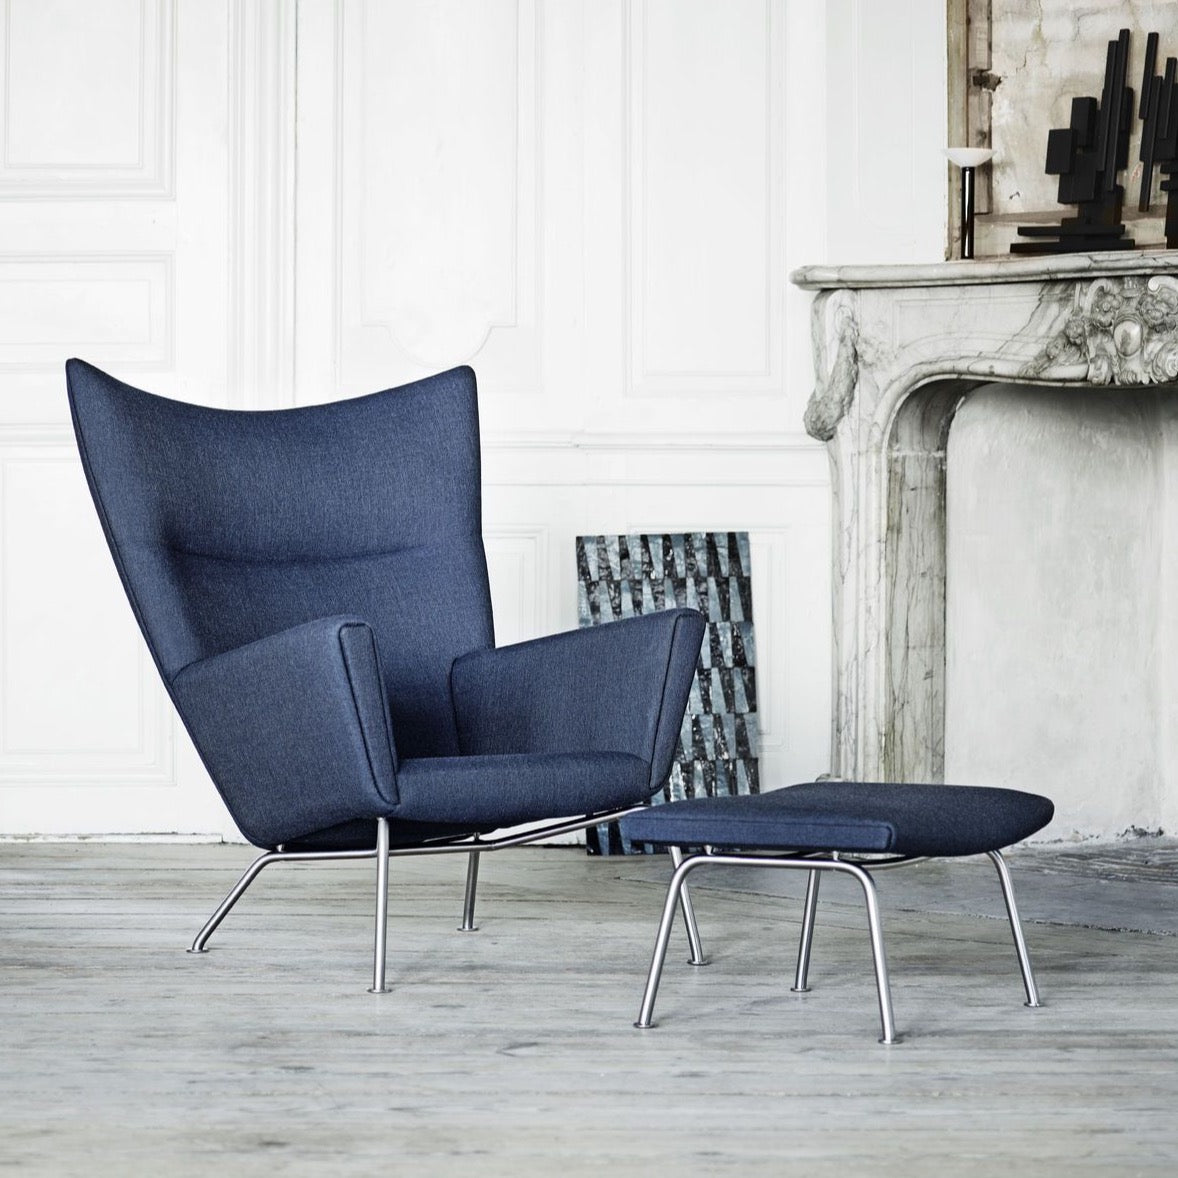 CARL HANSEN & SØN | CH445 | Wing Chair | Designed 1960 | Hans J. Wegner | Available in 3* to 10 Weeks depending on upholstery chosen.